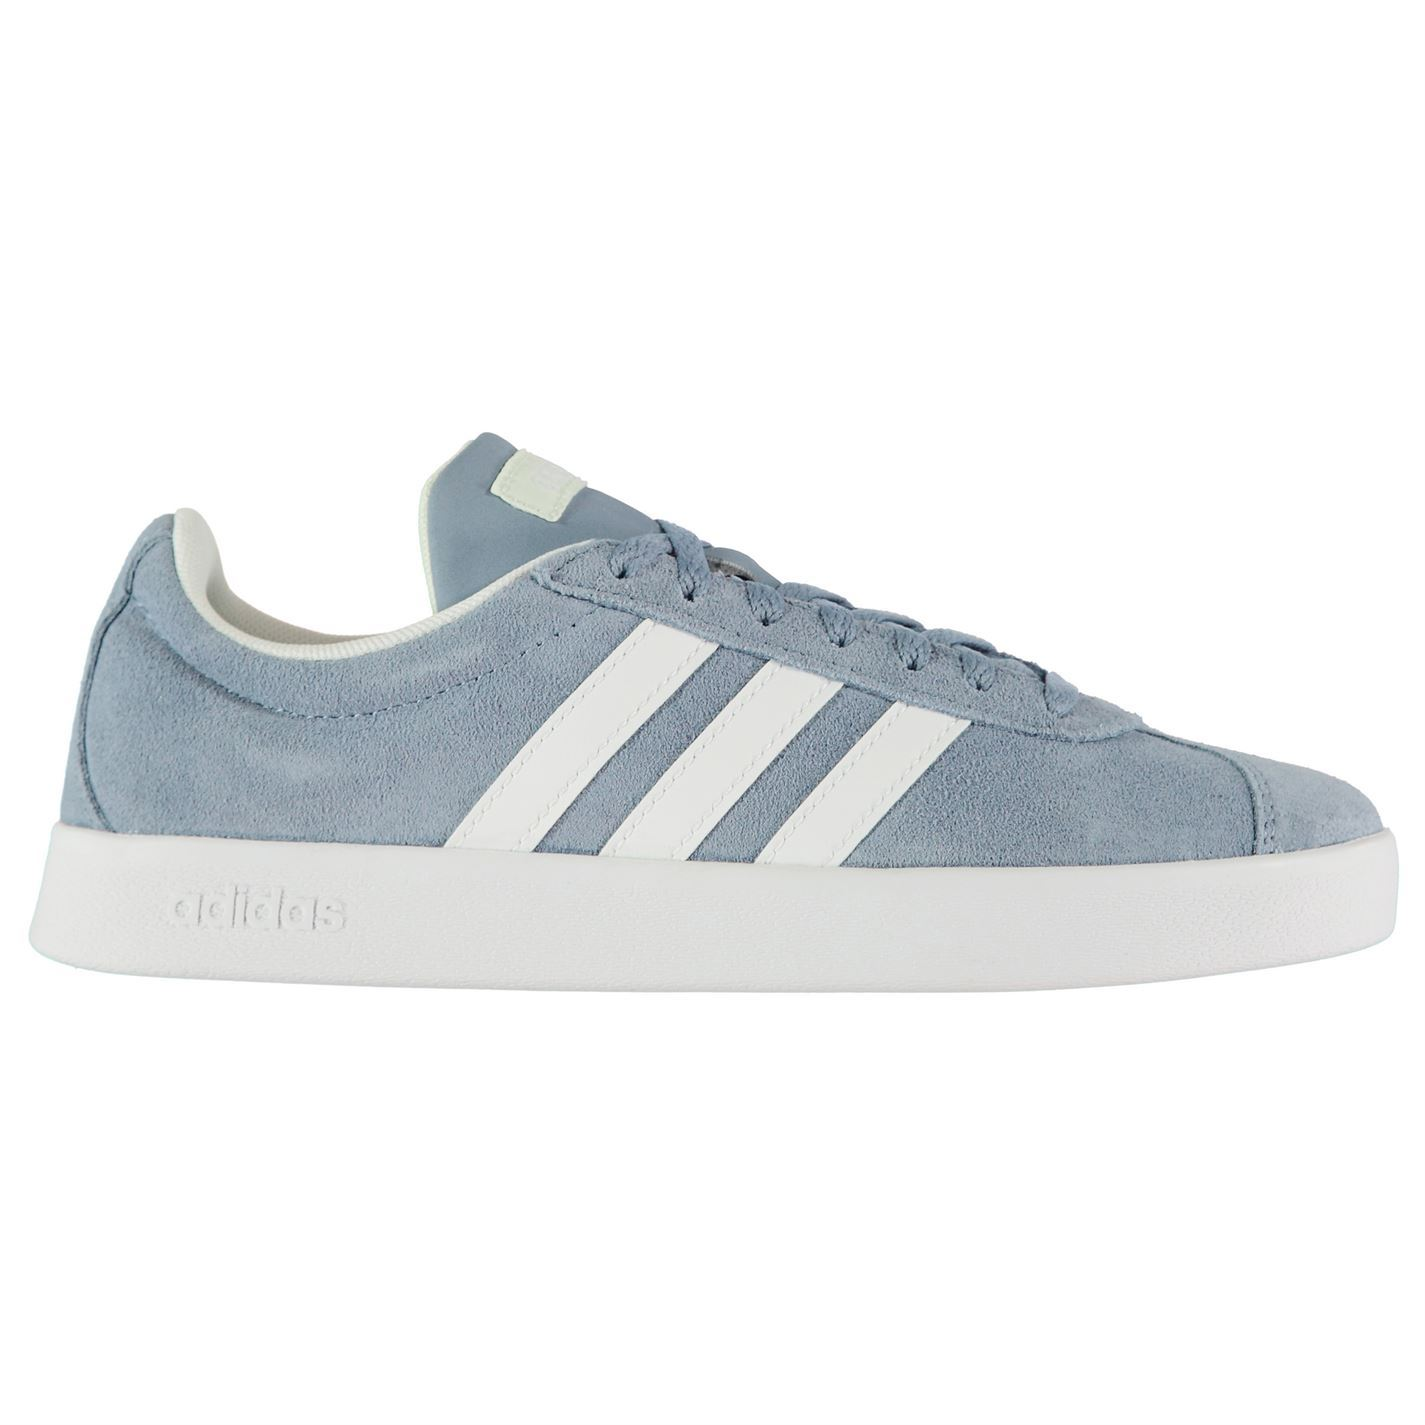 affordable cheap price Adidas lace fastened sneakers marketable cheap price 97ar5